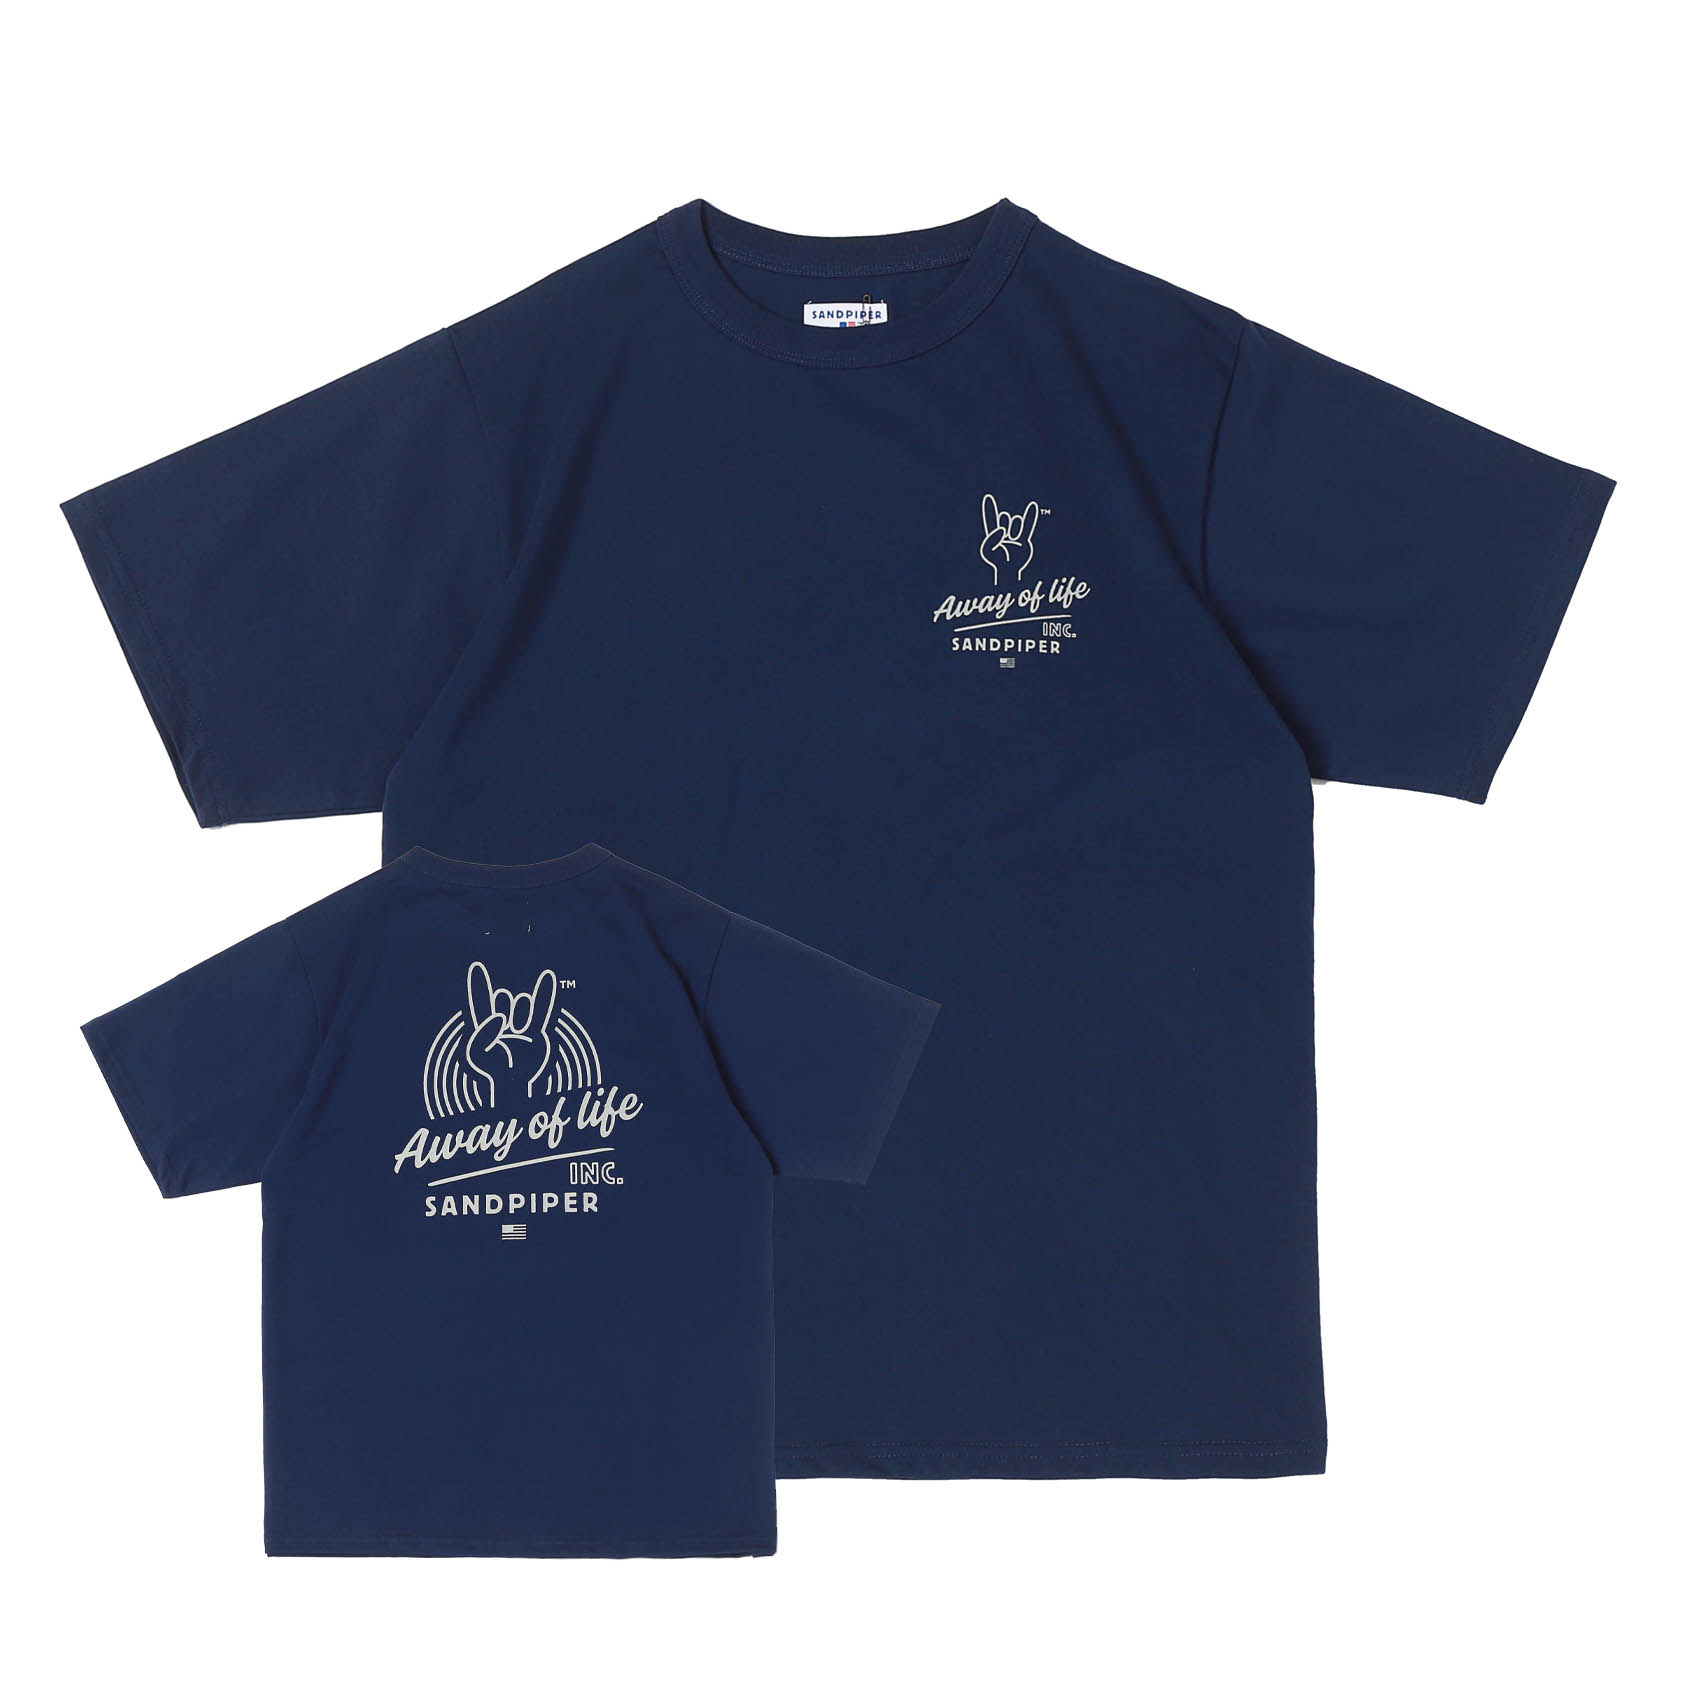 FINGER SIGNATURE TEE - NAVY